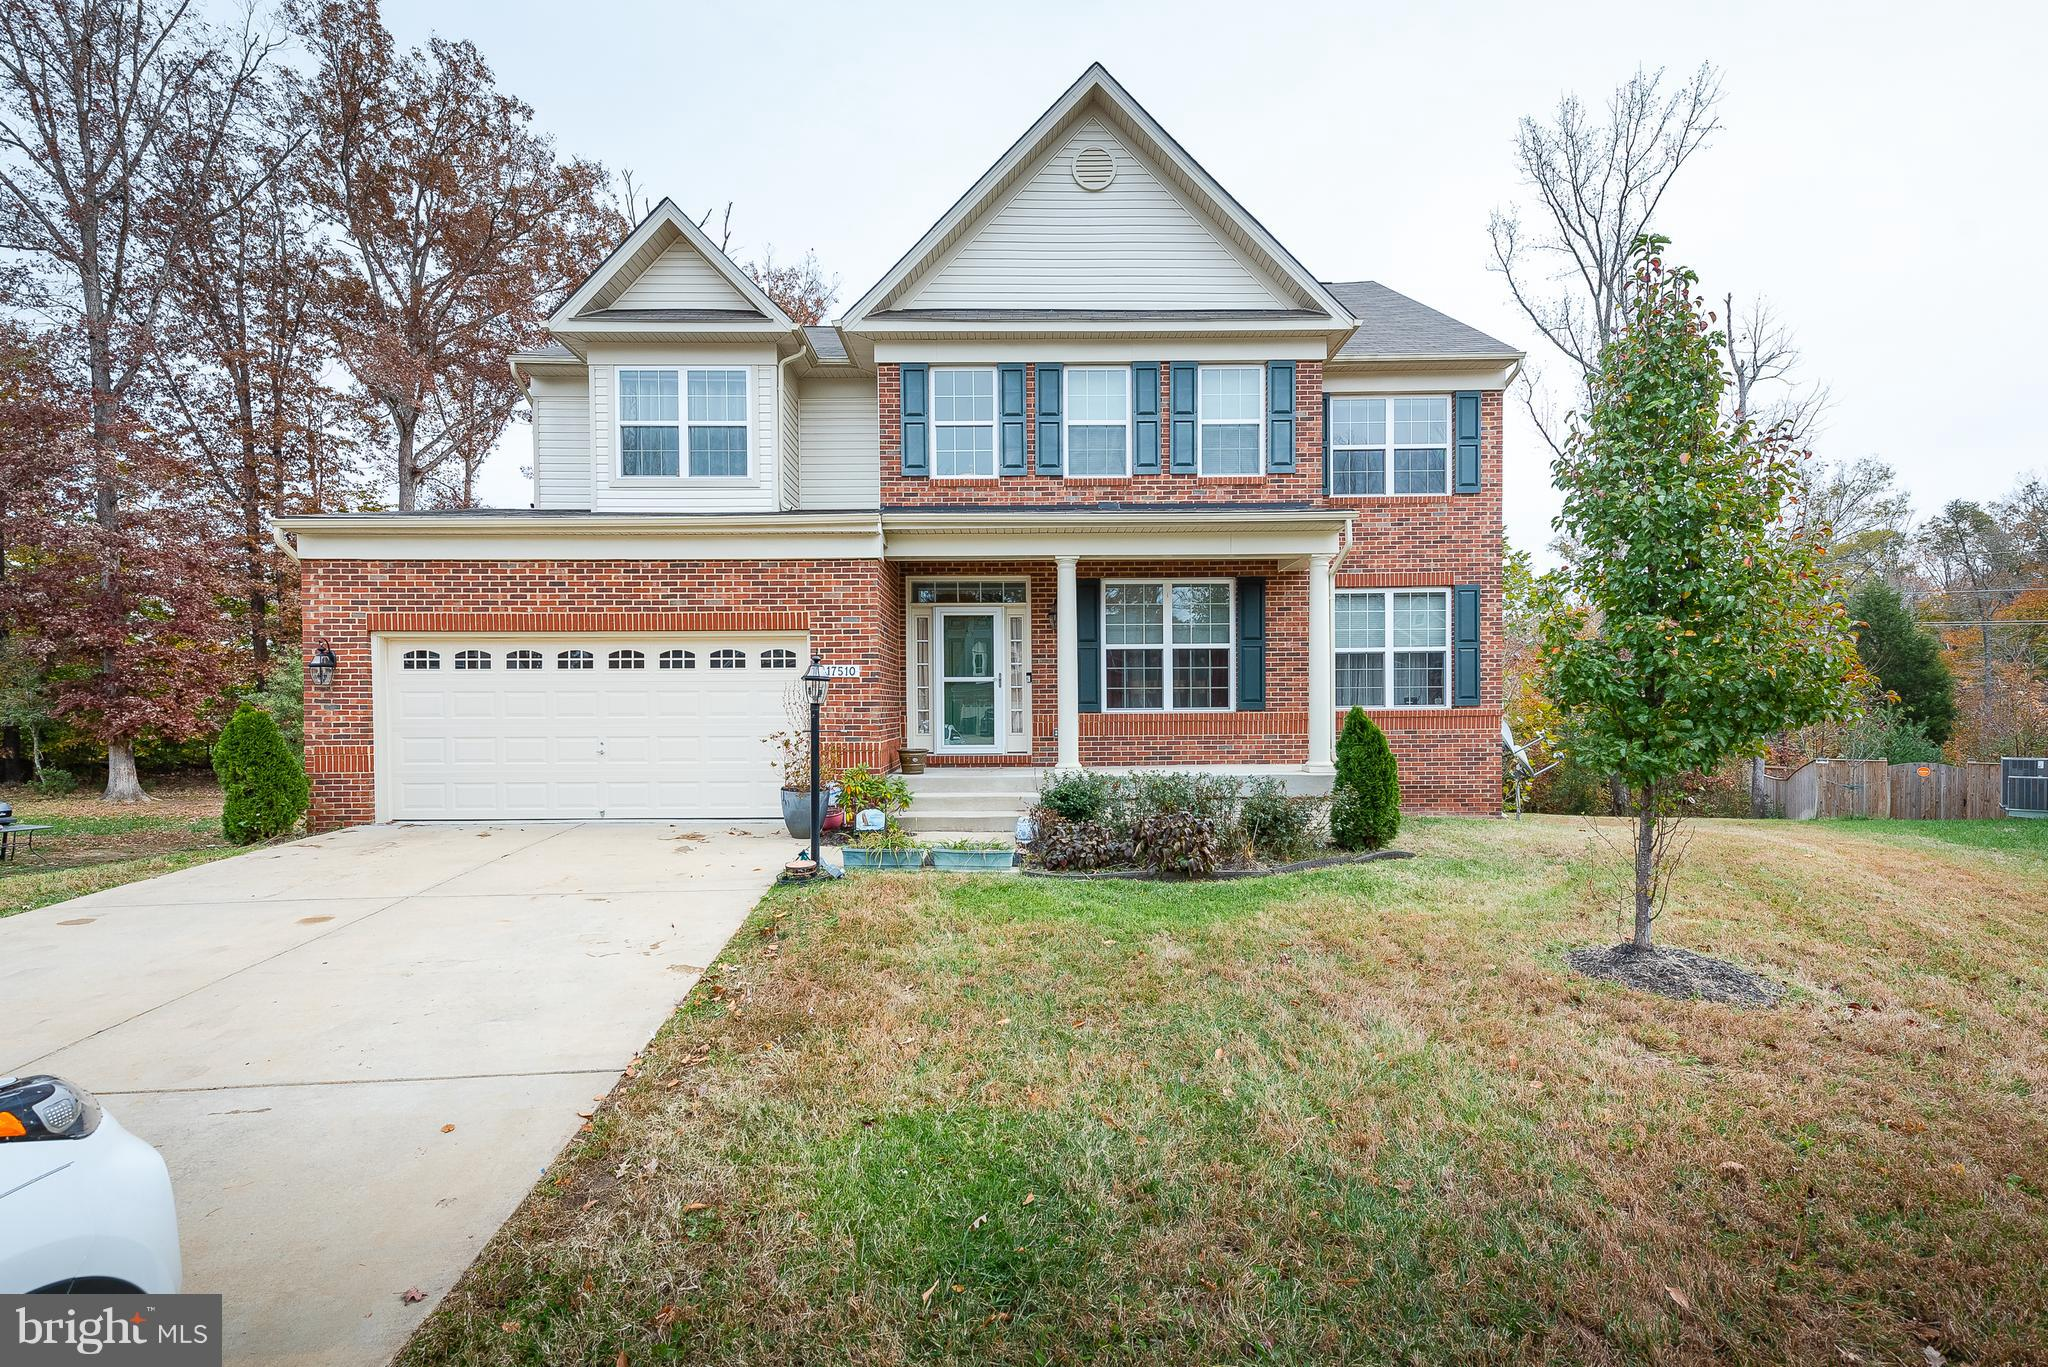 17510 MADRILLON WAY, ACCOKEEK, MD 20607